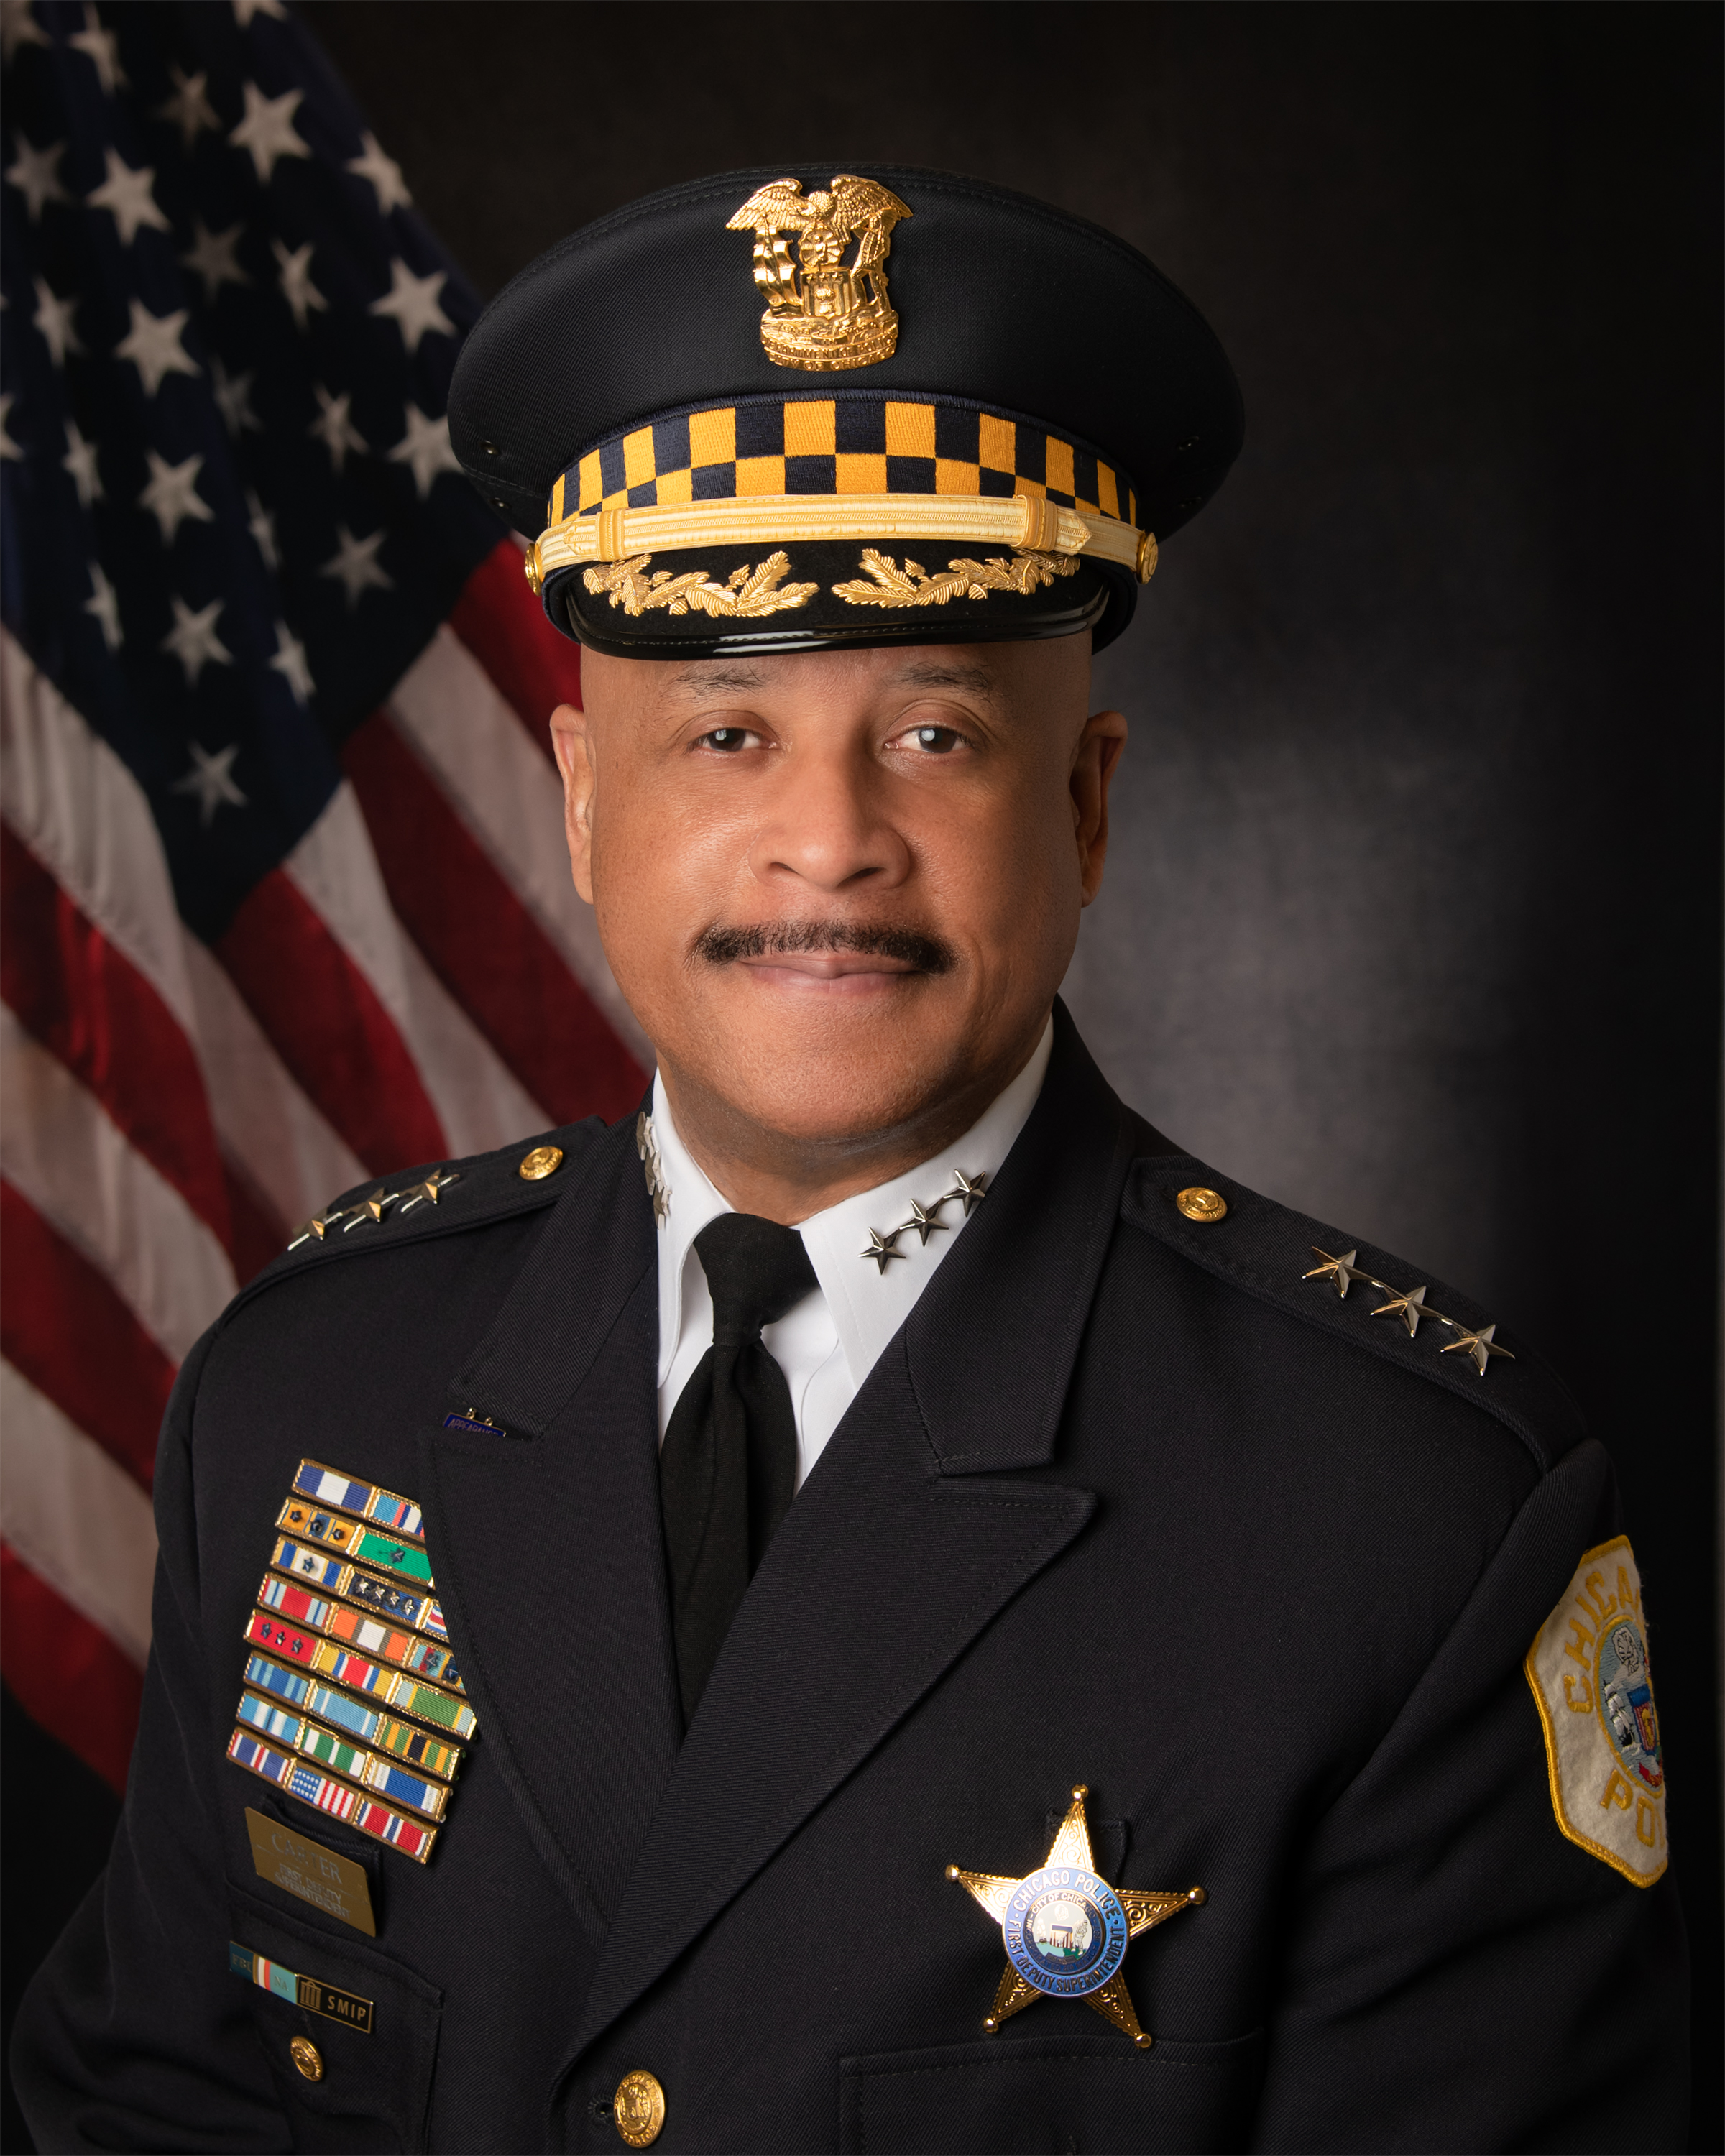 First Deputy Superintendent of Police Anthony J. Riccio